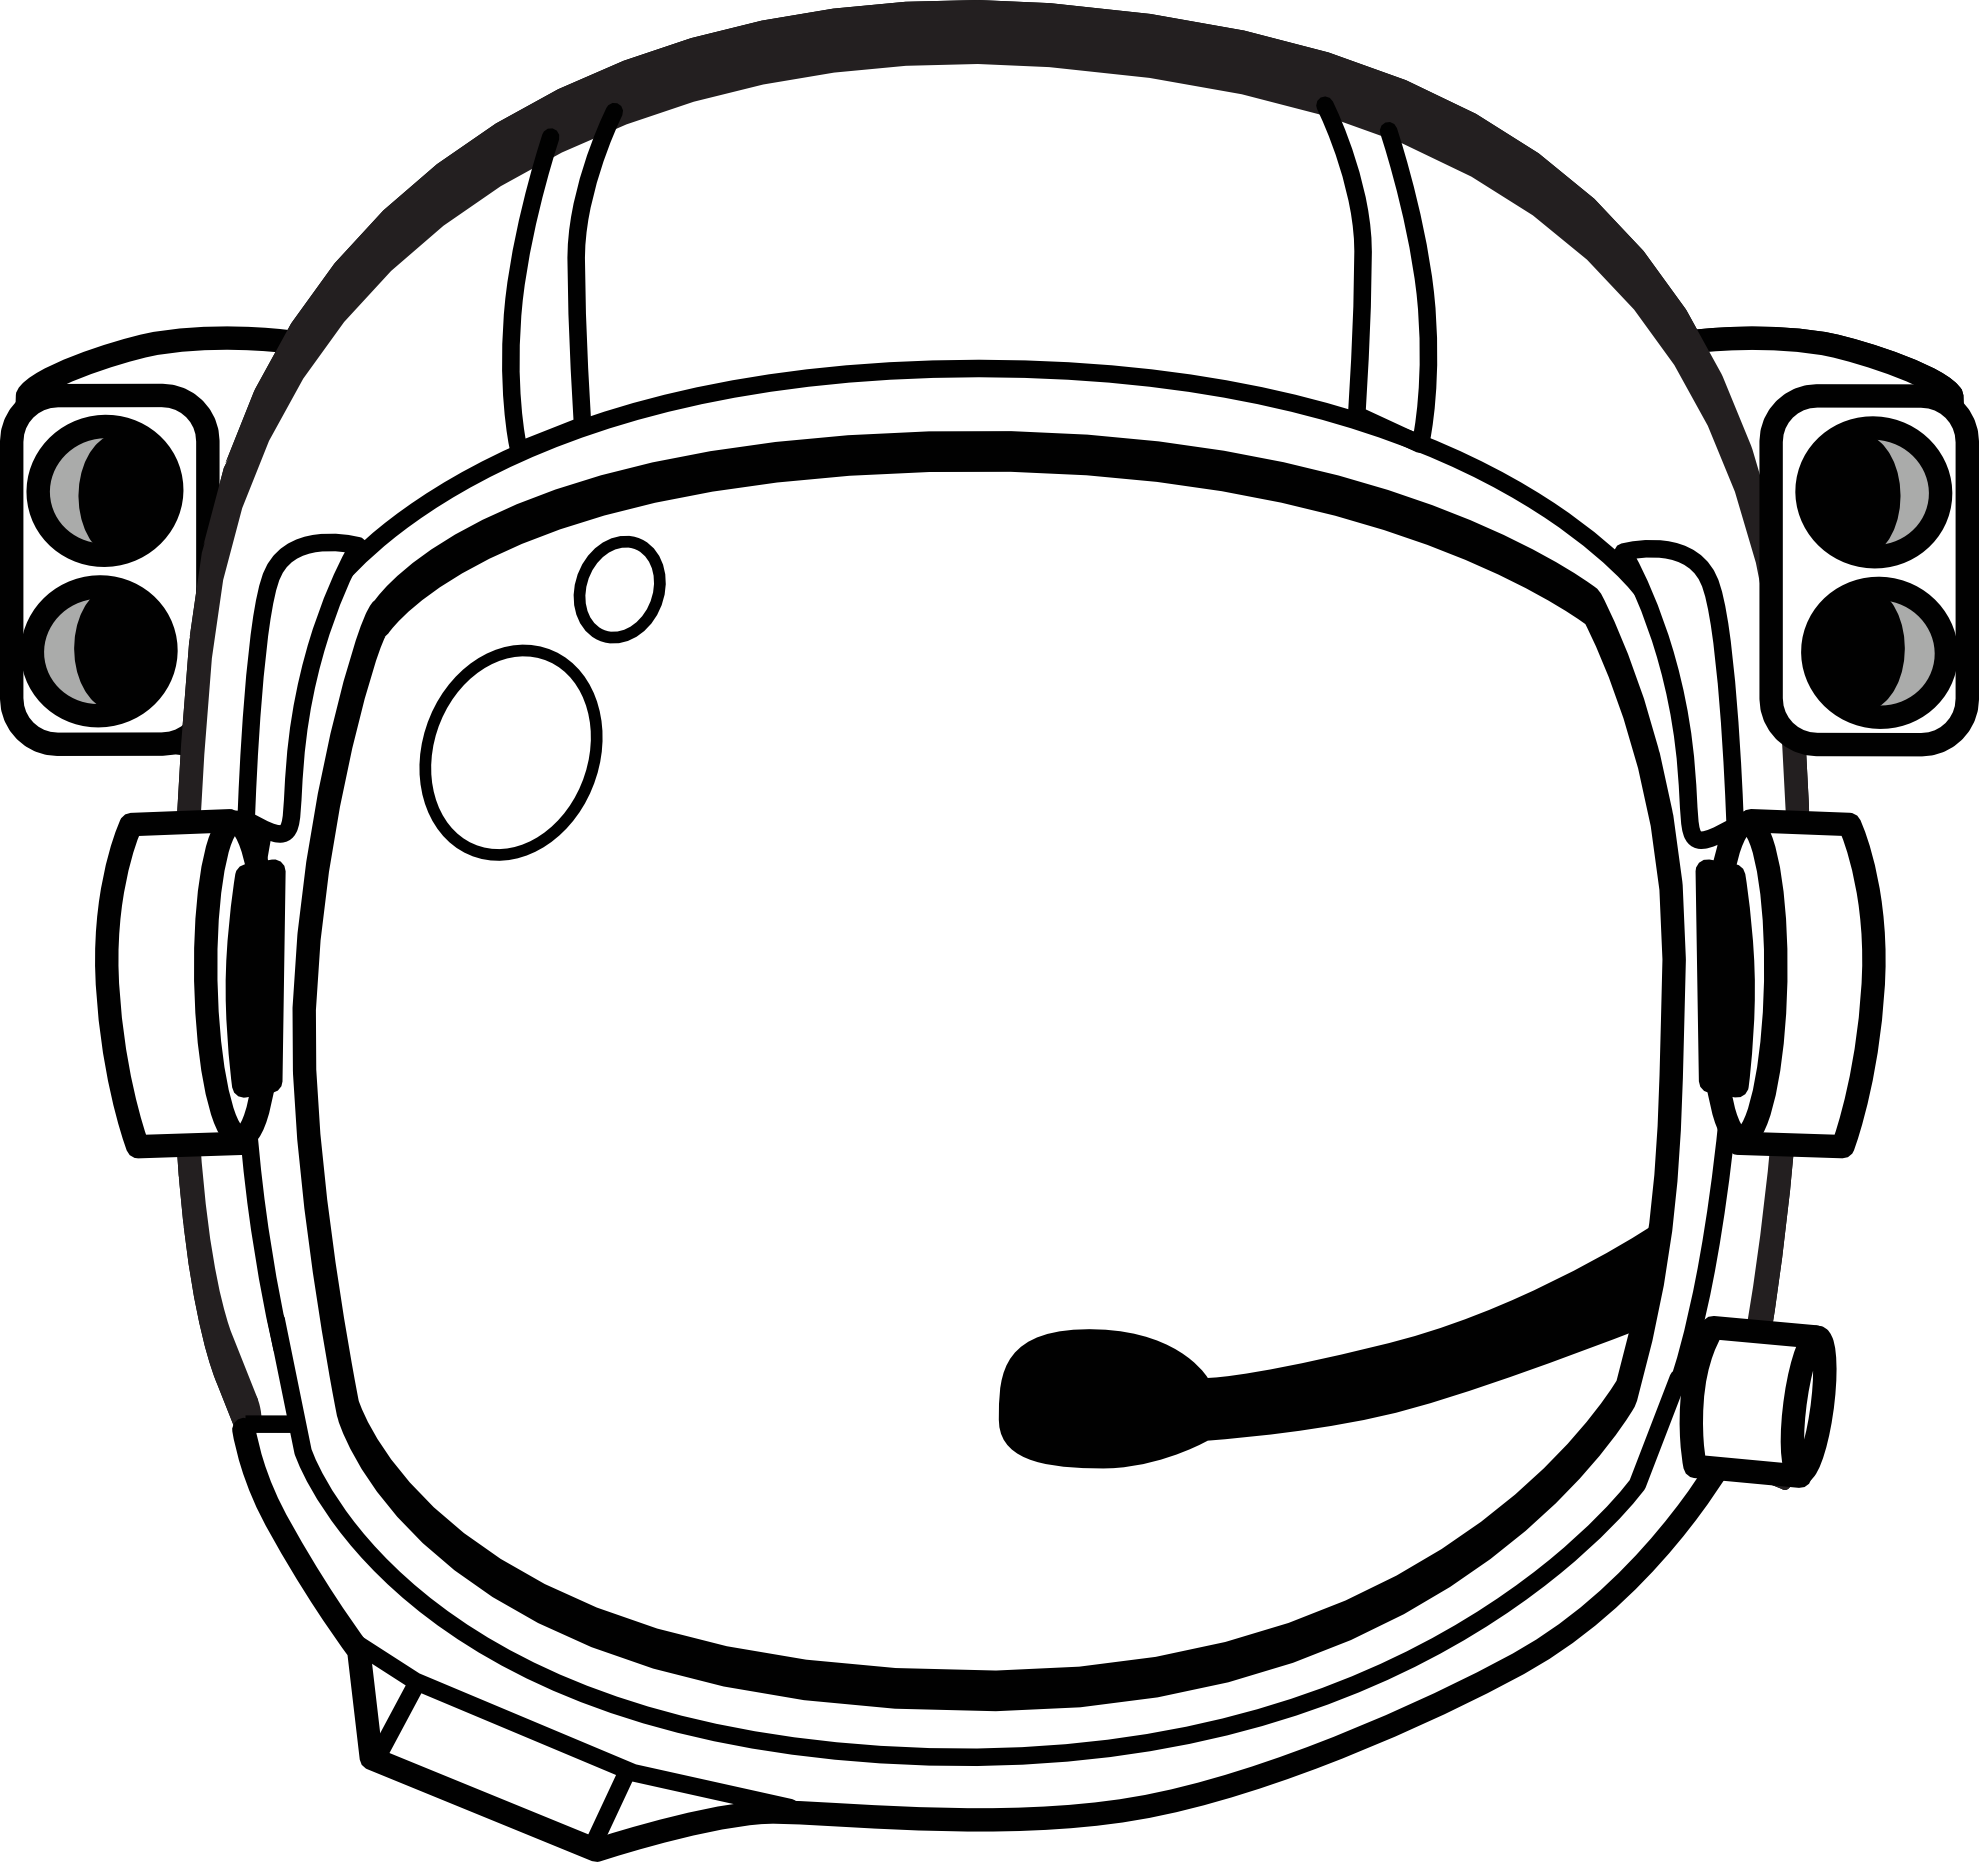 Football helmet black and. Planets clipart space party